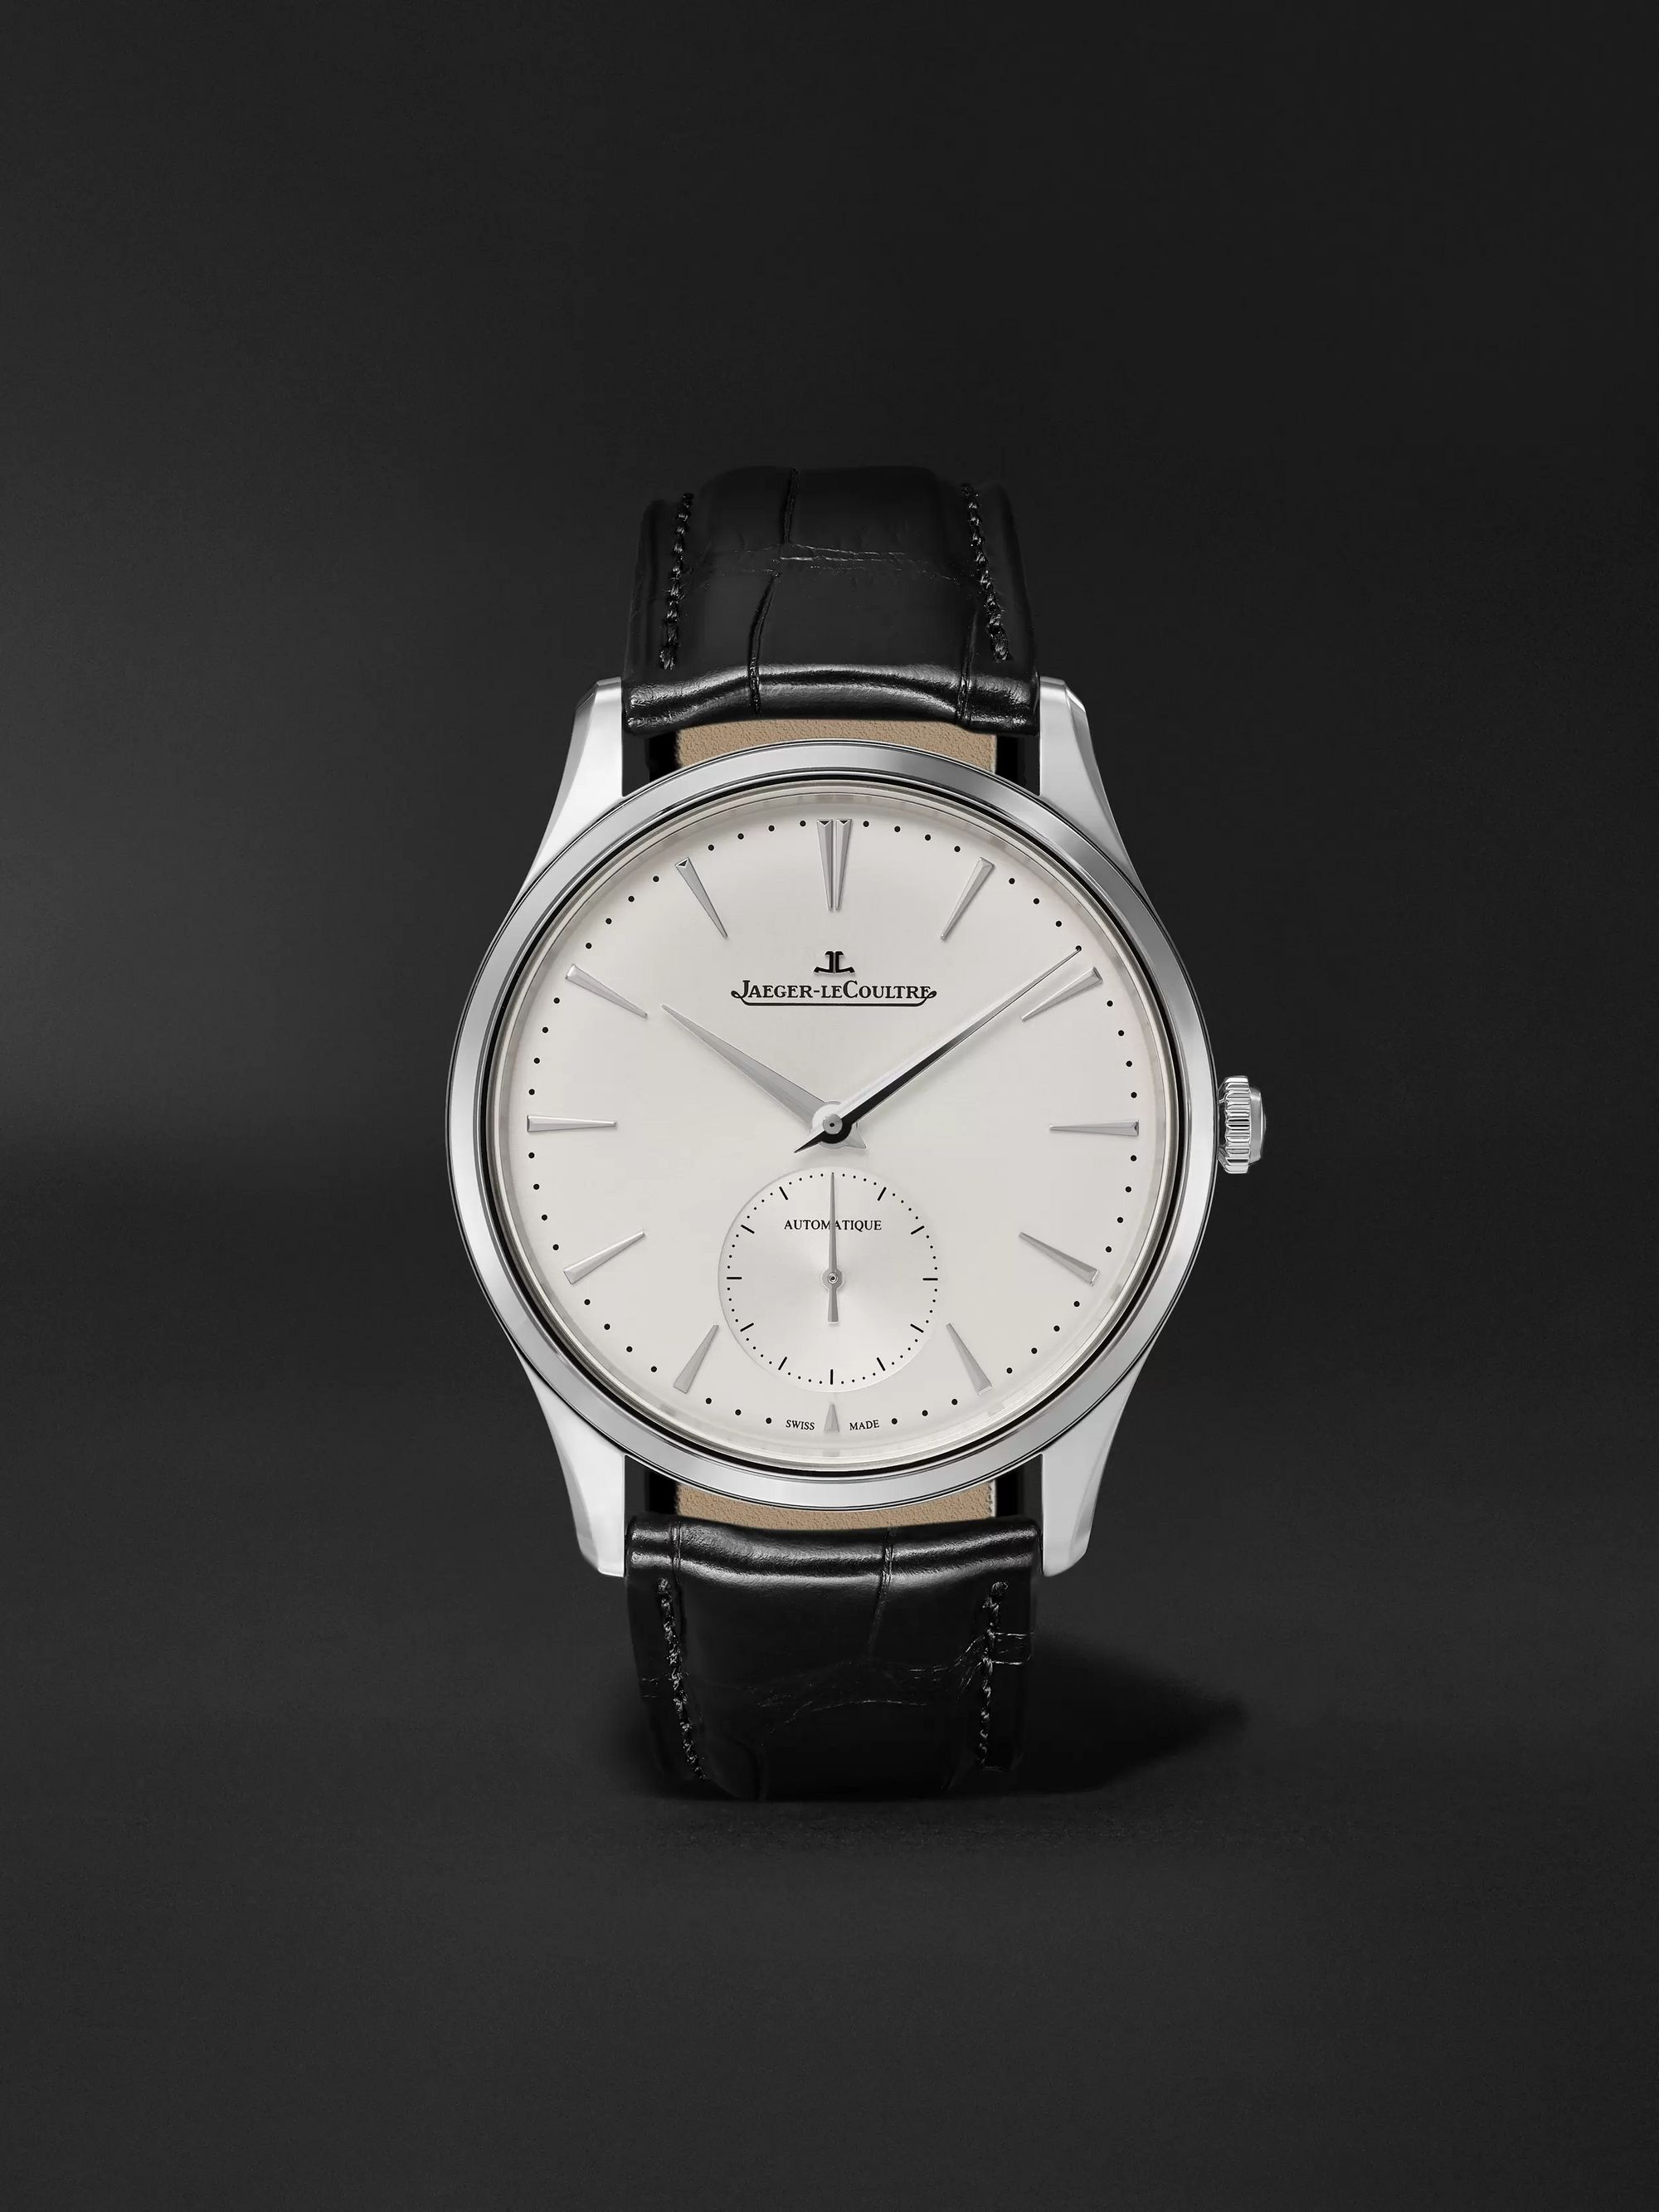 Jaeger-LeCoultre Master Ultra Thin Small Seconds Automatic 39mm Stainless Steel and Alligator Watch, Ref. No. Q1218420